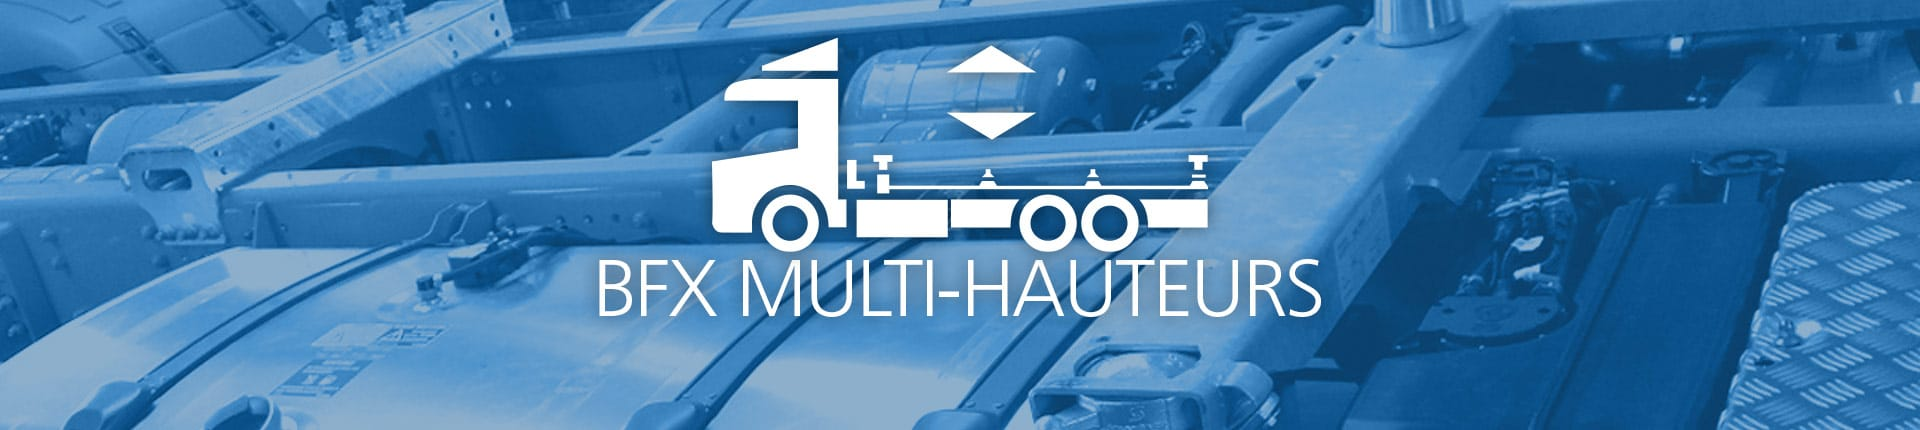 Header BFX Multi-hauteurs